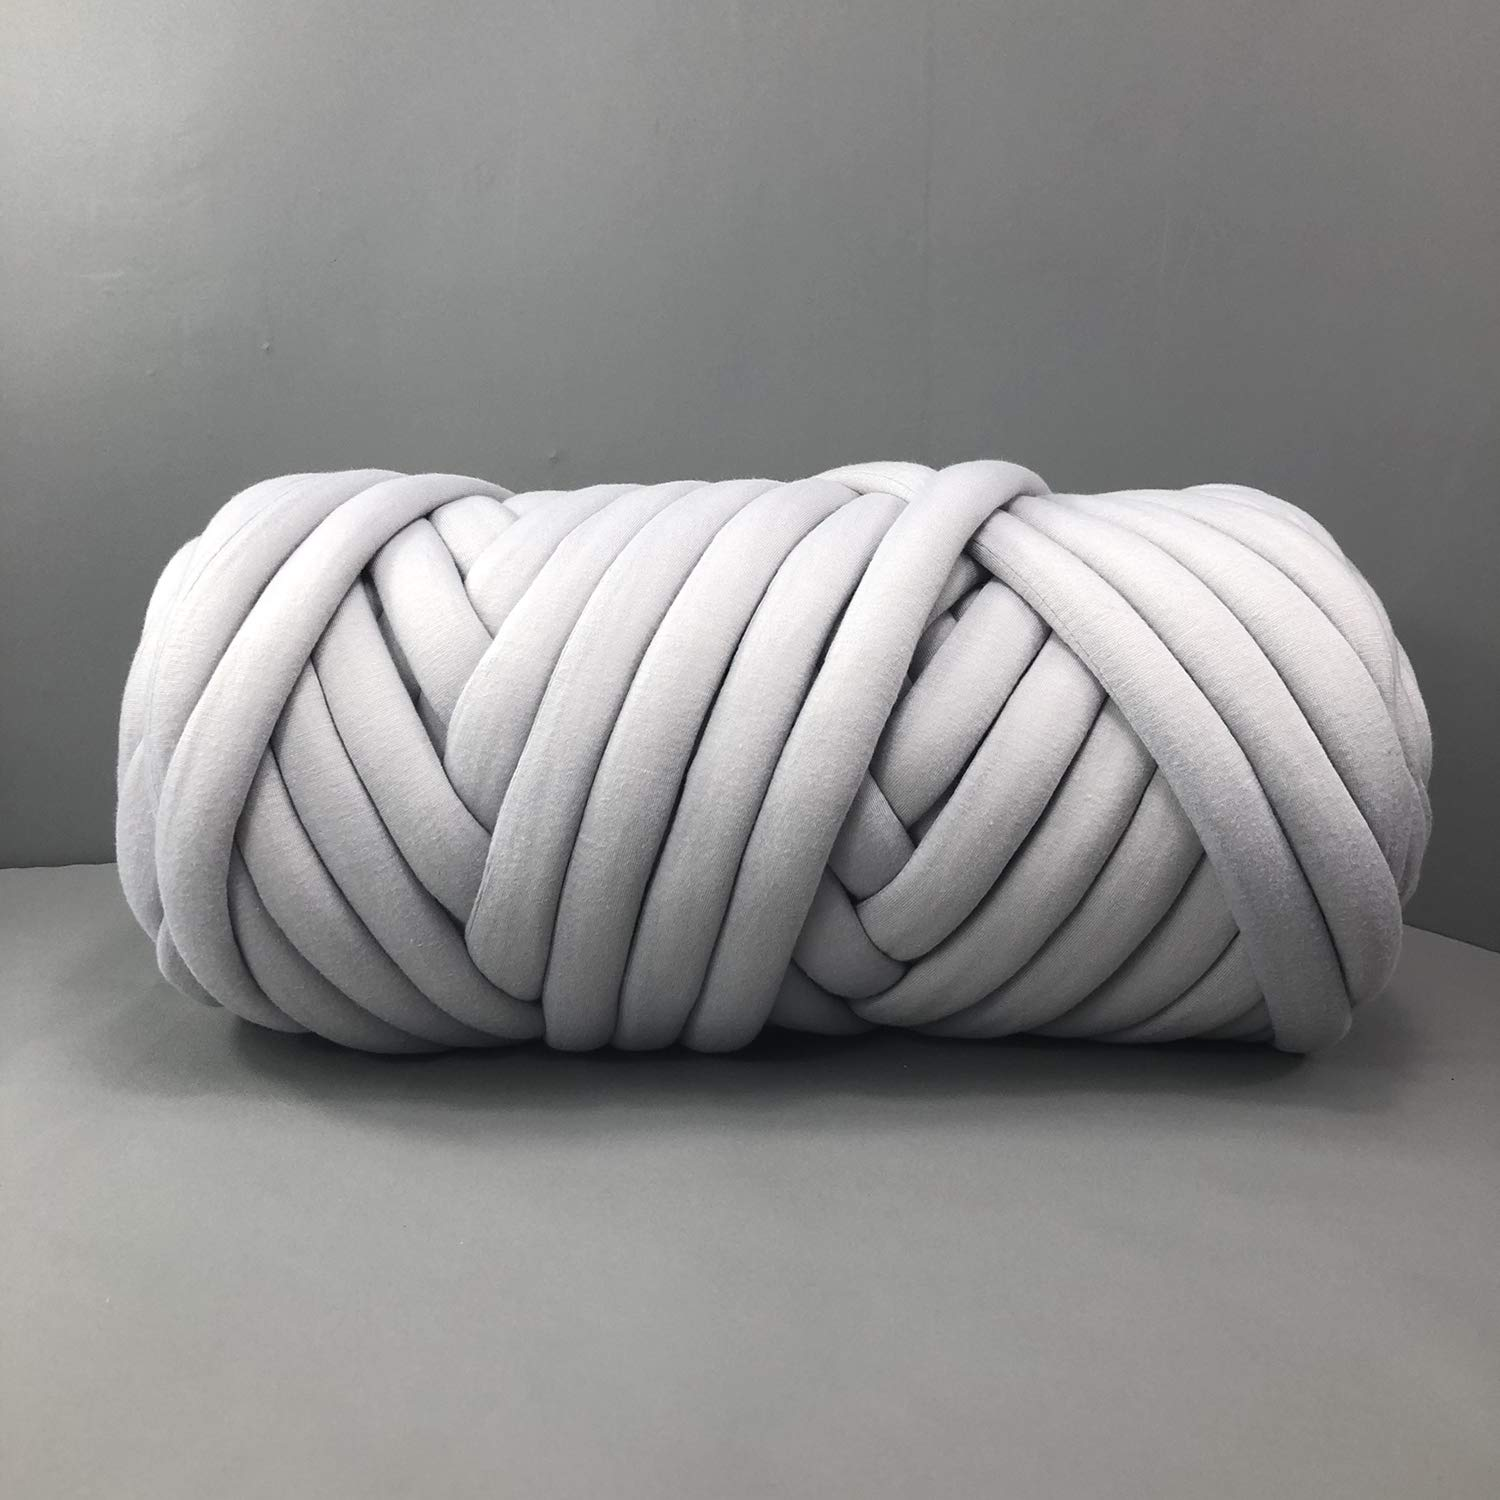 EASTSURE Chunky Braid Cotton Yarn Supre Large for Arm Knitting DIY Handmade Blankets Machine Washable,Grey,2.2LB